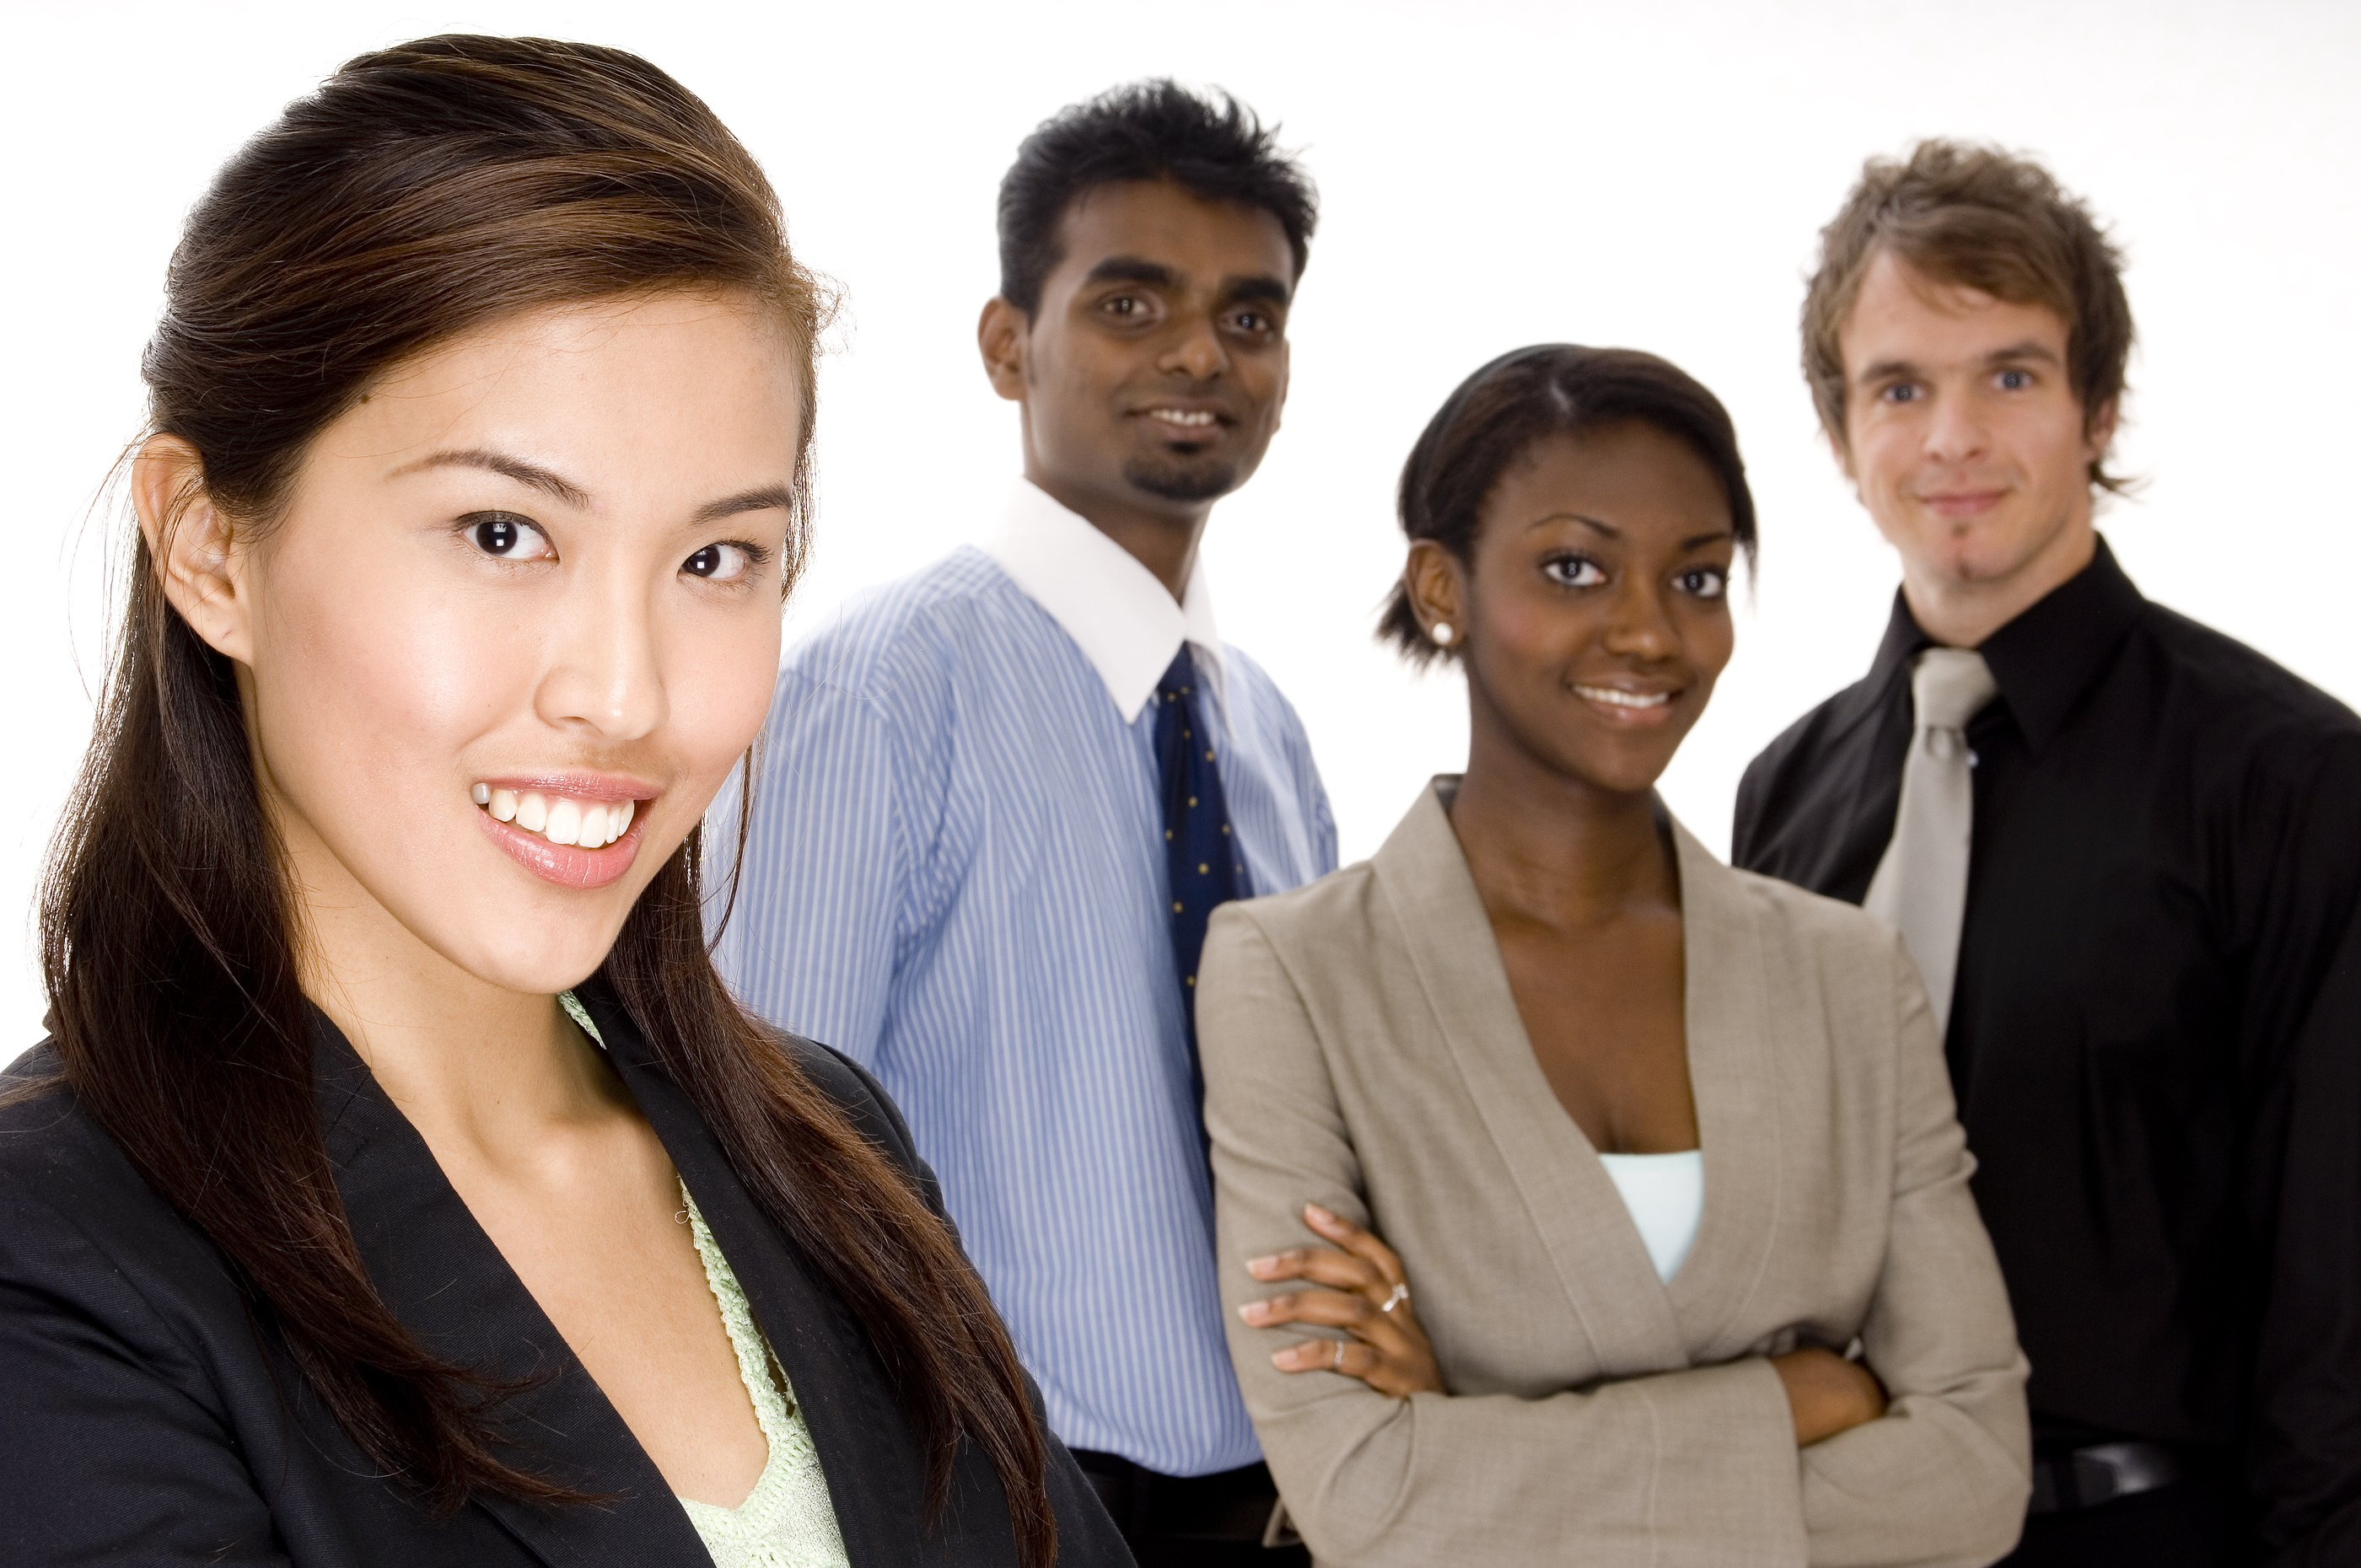 Thumbnail image for Business in Australia urged to boost diversity at senior levels